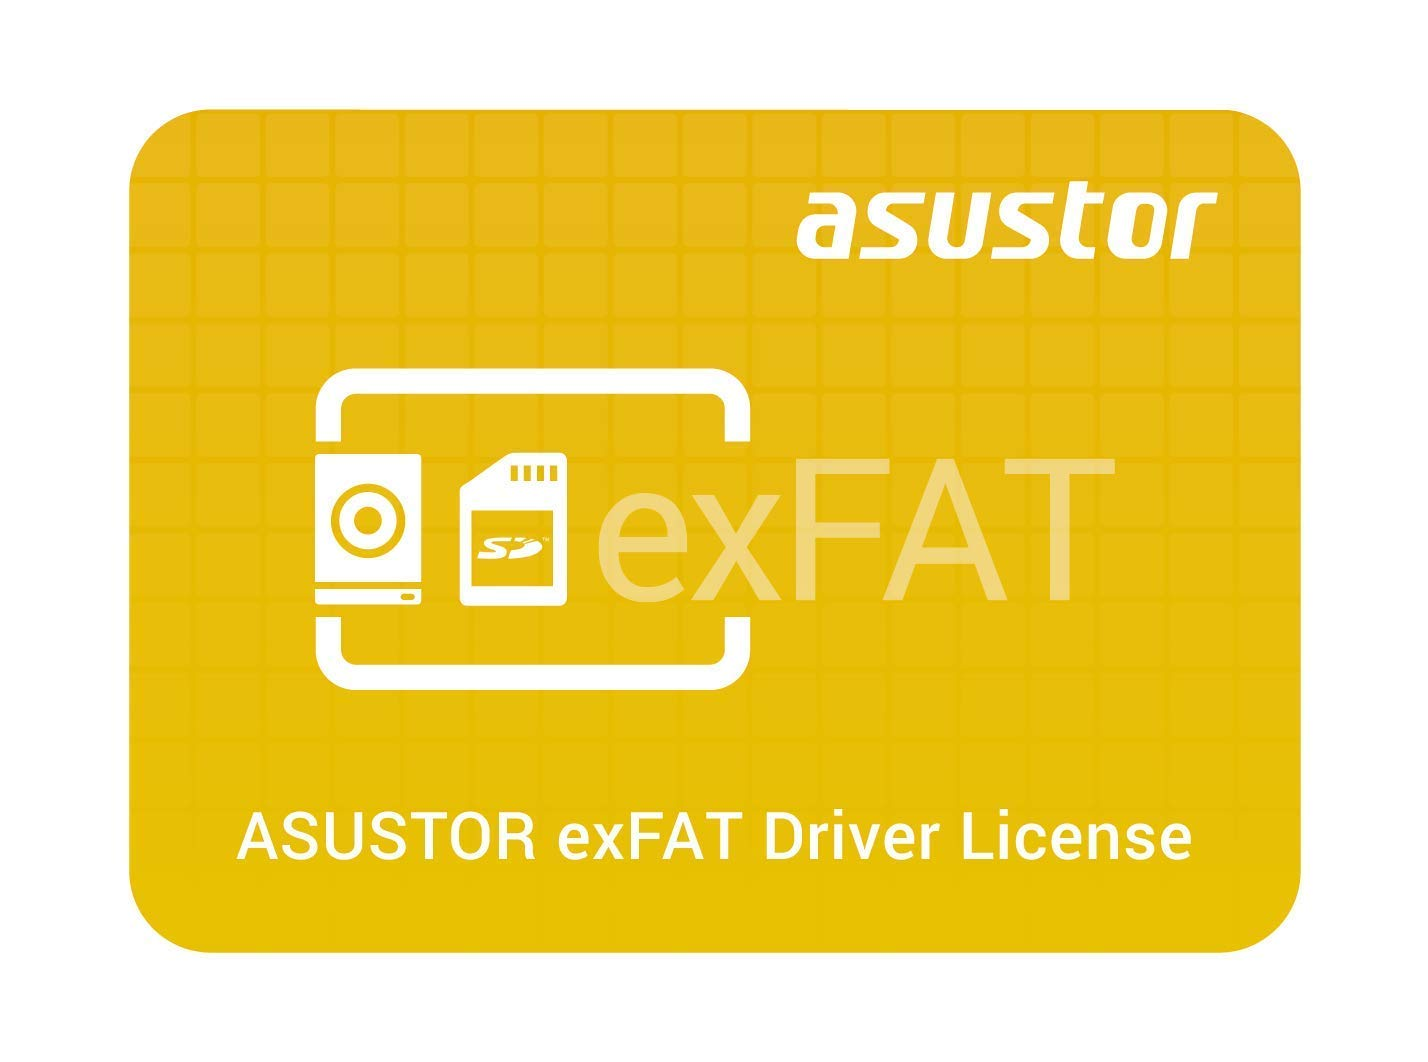 Asustor AS1002T v2   Network Attached Storage + Free exFAT License   1.6GHz Dual-Core, 512MB RAM   Personal Private Cloud   Home Media Server (2 Bay Diskless NAS) by Asustor (Image #9)